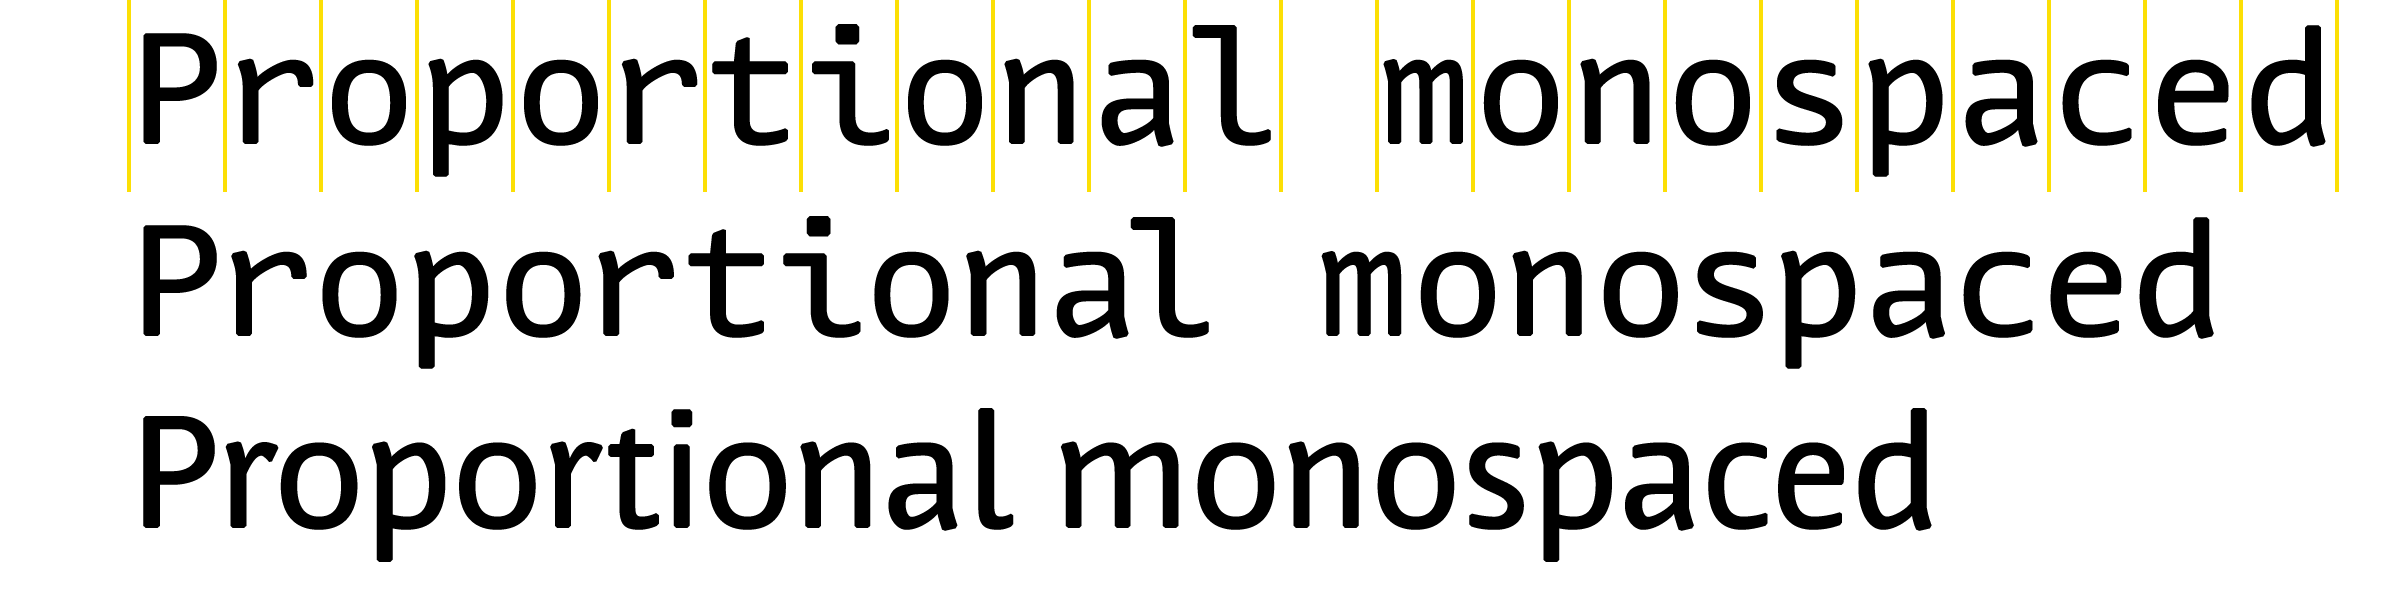 When applying Optical Kerning to the monospaced typeface [FF Nuvo® Mono](/families/ff-nuvo-mono) the fixed-width rhythm of the characters in the top line gets lost as the spacing is dramatically altered. If you compare the middle line to the proportional version [FF Nuvo®](/families/ff-nuvo) at the bottom, the awkward combination of monospaced character shapes with proportional spacing is neither fish nor flesh. Typeface: [FF Nuvo®](/superfamilies/ff-nuvo) by [Siegfried Rückel](/designers/siegfried-rueckel)